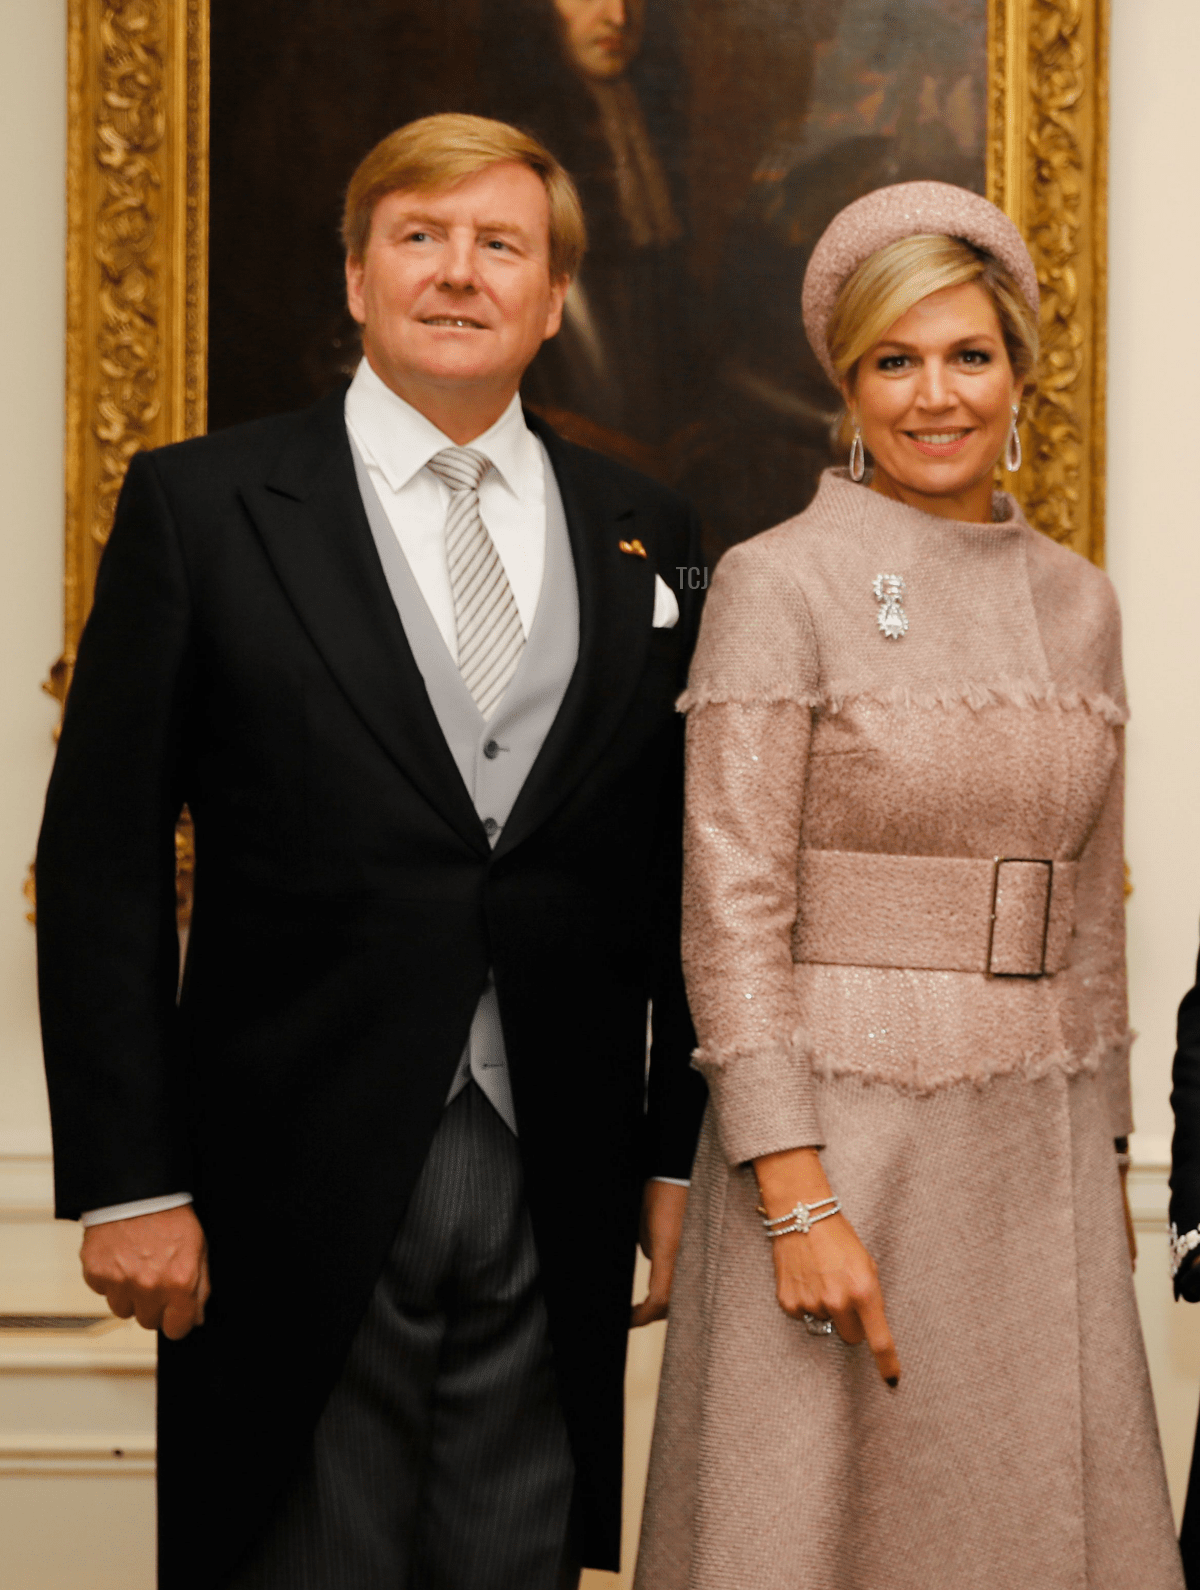 King Willem-Alexander and Queen Maxima of the Netherlands at the Dutch Ambassadors Residence in London on October 23, 2018